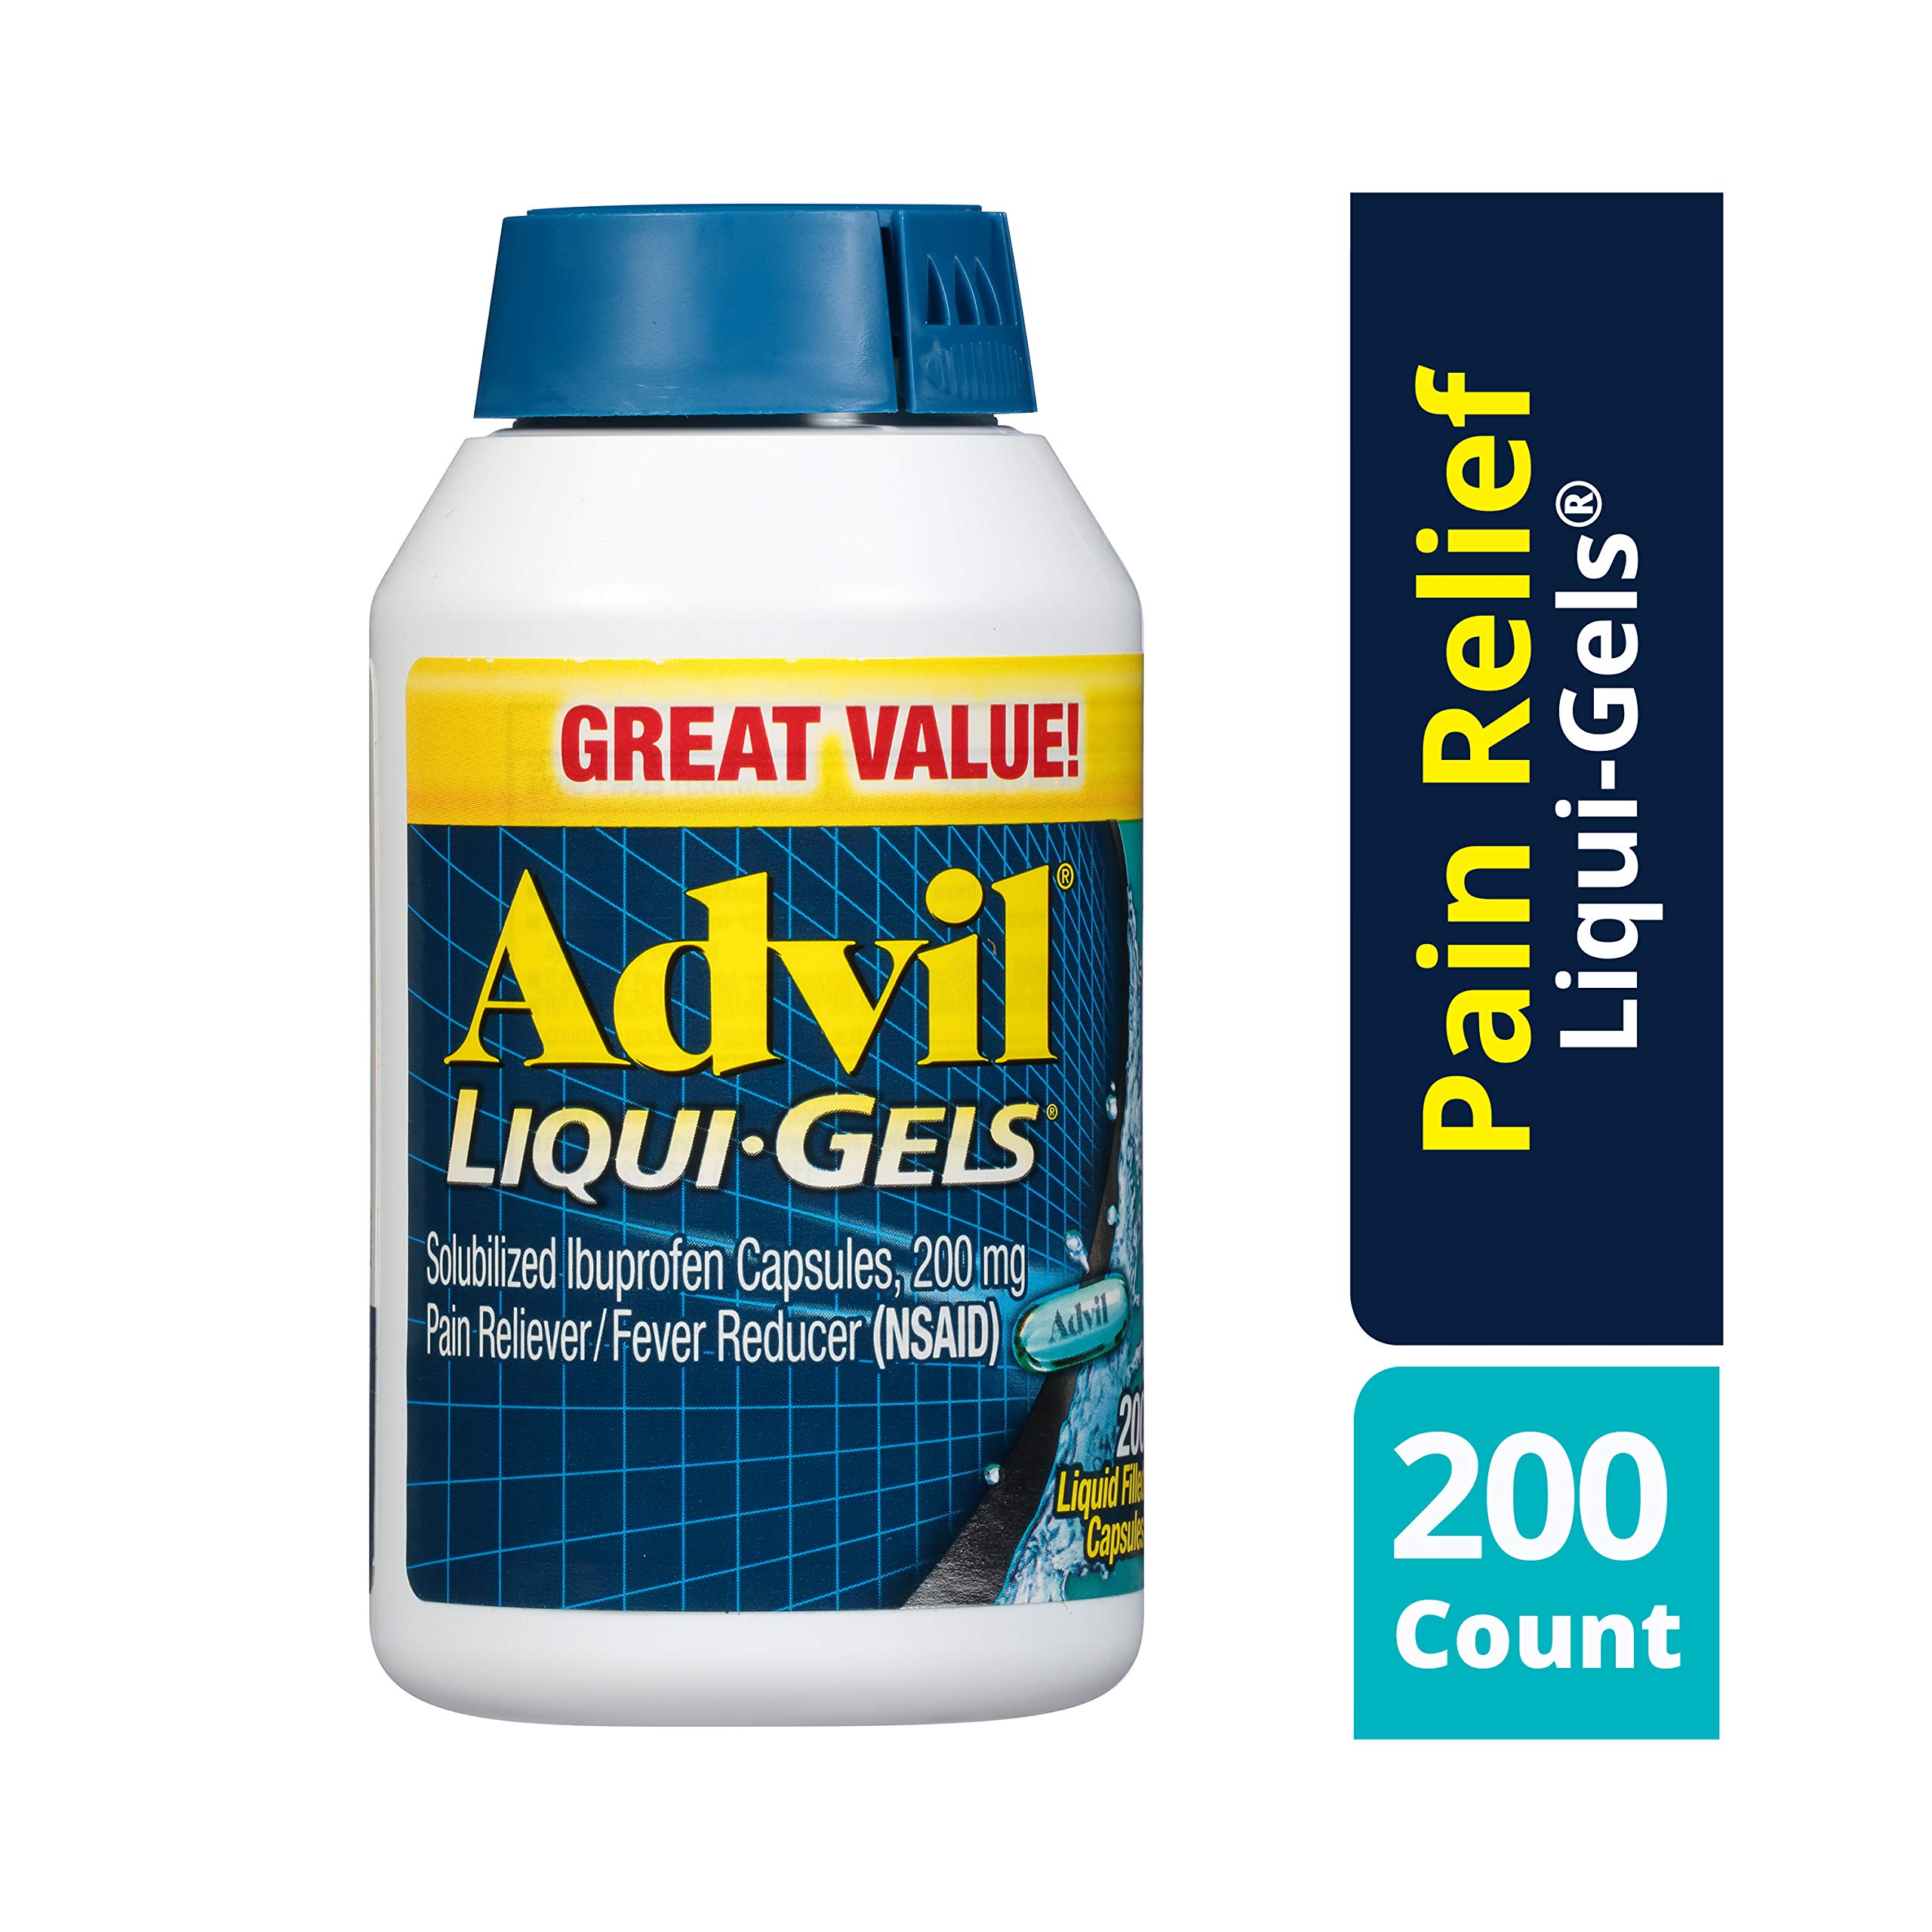 Advil Liqui-Gels (200 Count (Pack of 1)) Pain Reliever / Fever Reducer Liquid Filled Capsule, 200mg Ibuprofen, Temporary Pain Relief by Advil